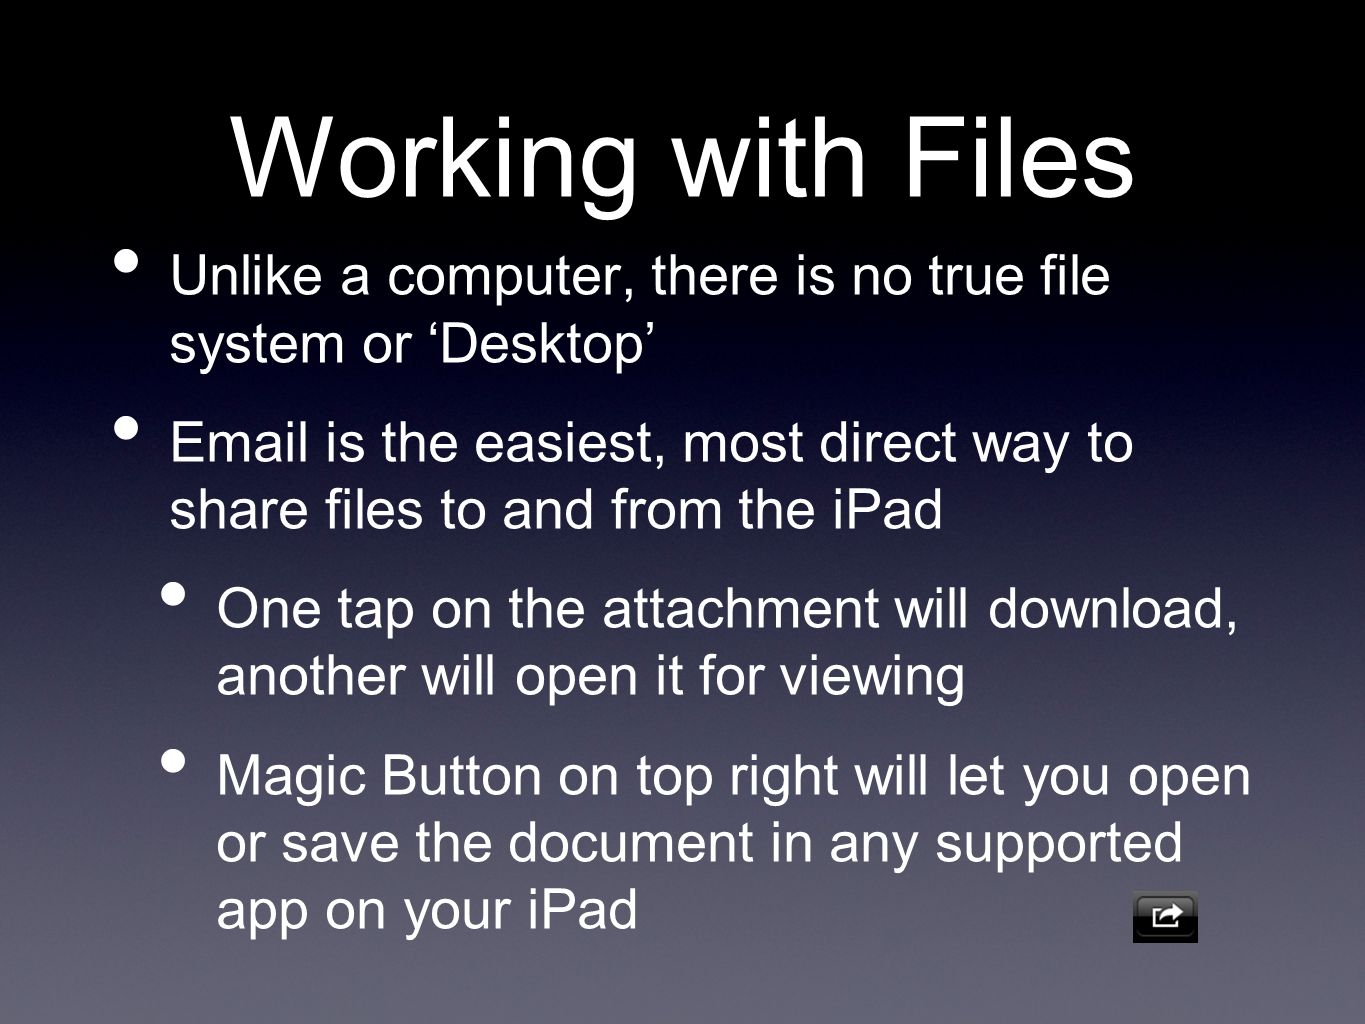 Working with Files Unlike a computer, there is no true file system or Desktop Email is the easiest, most direct way to share files to and from the iPad One tap on the attachment will download, another will open it for viewing Magic Button on top right will let you open or save the document in any supported app on your iPad